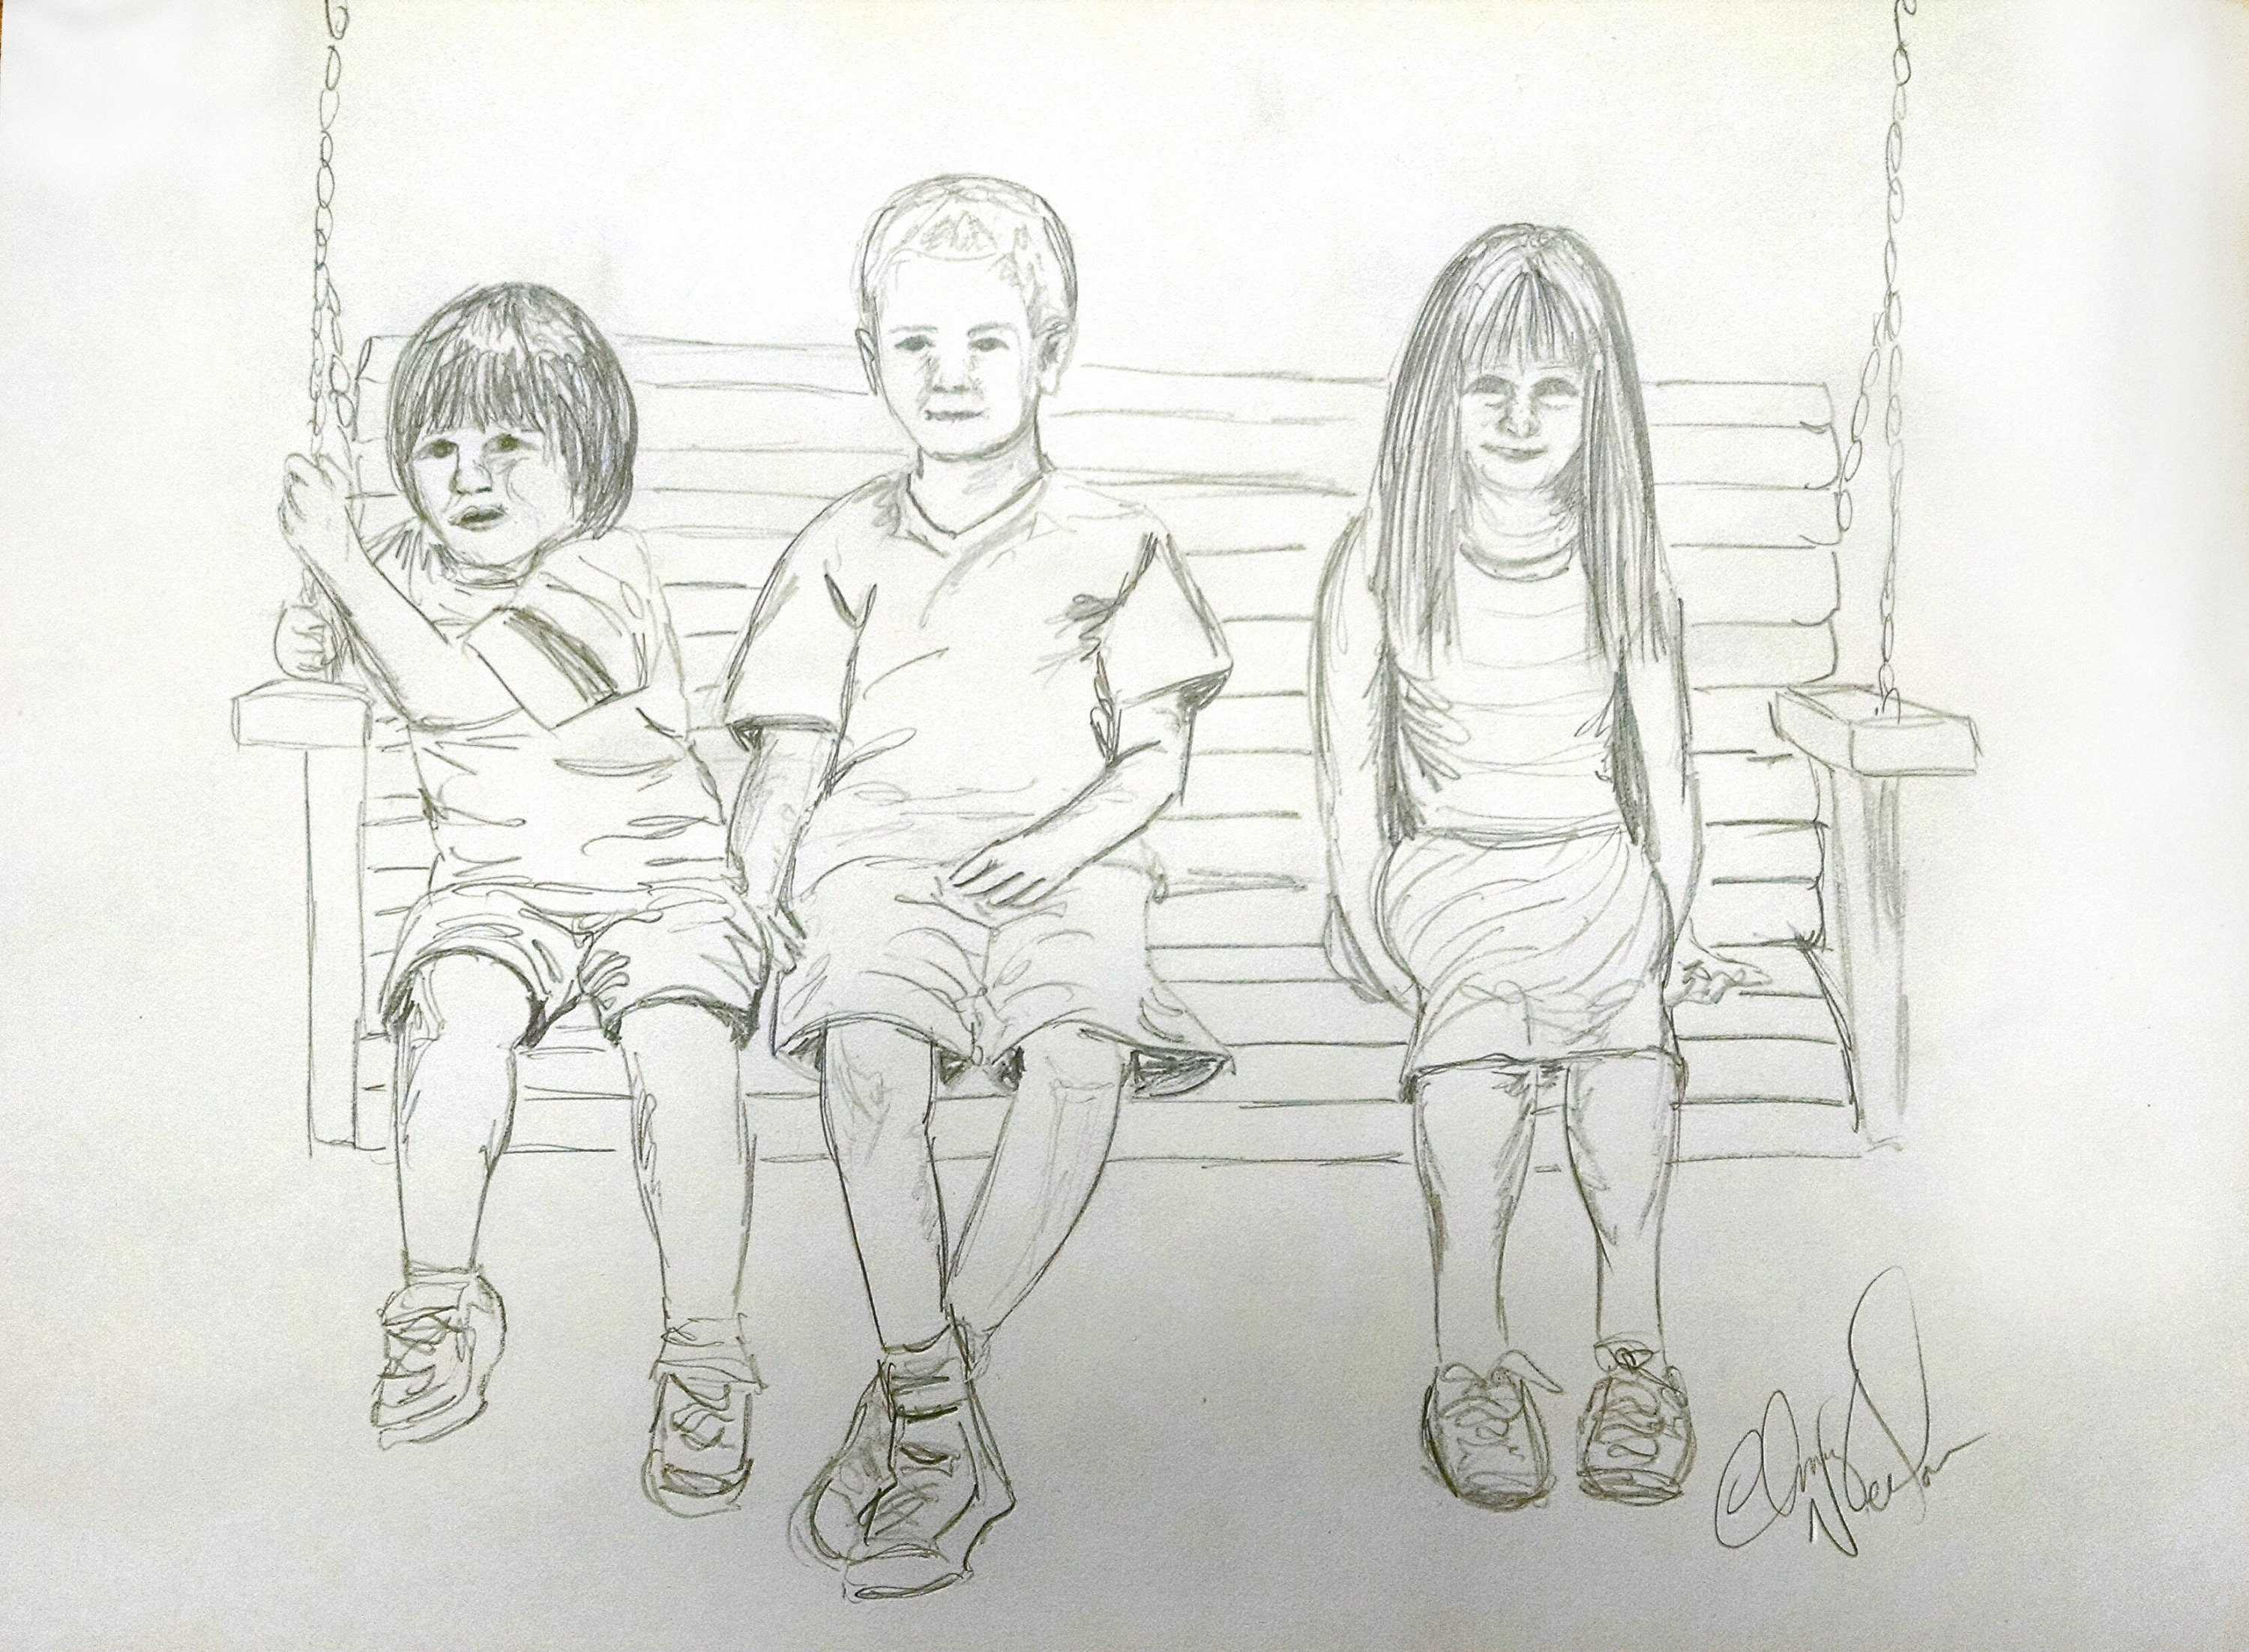 Portrait drawing portrait family drawing pencil drawing family pencil drawing original art gift custom gift family hand drawn